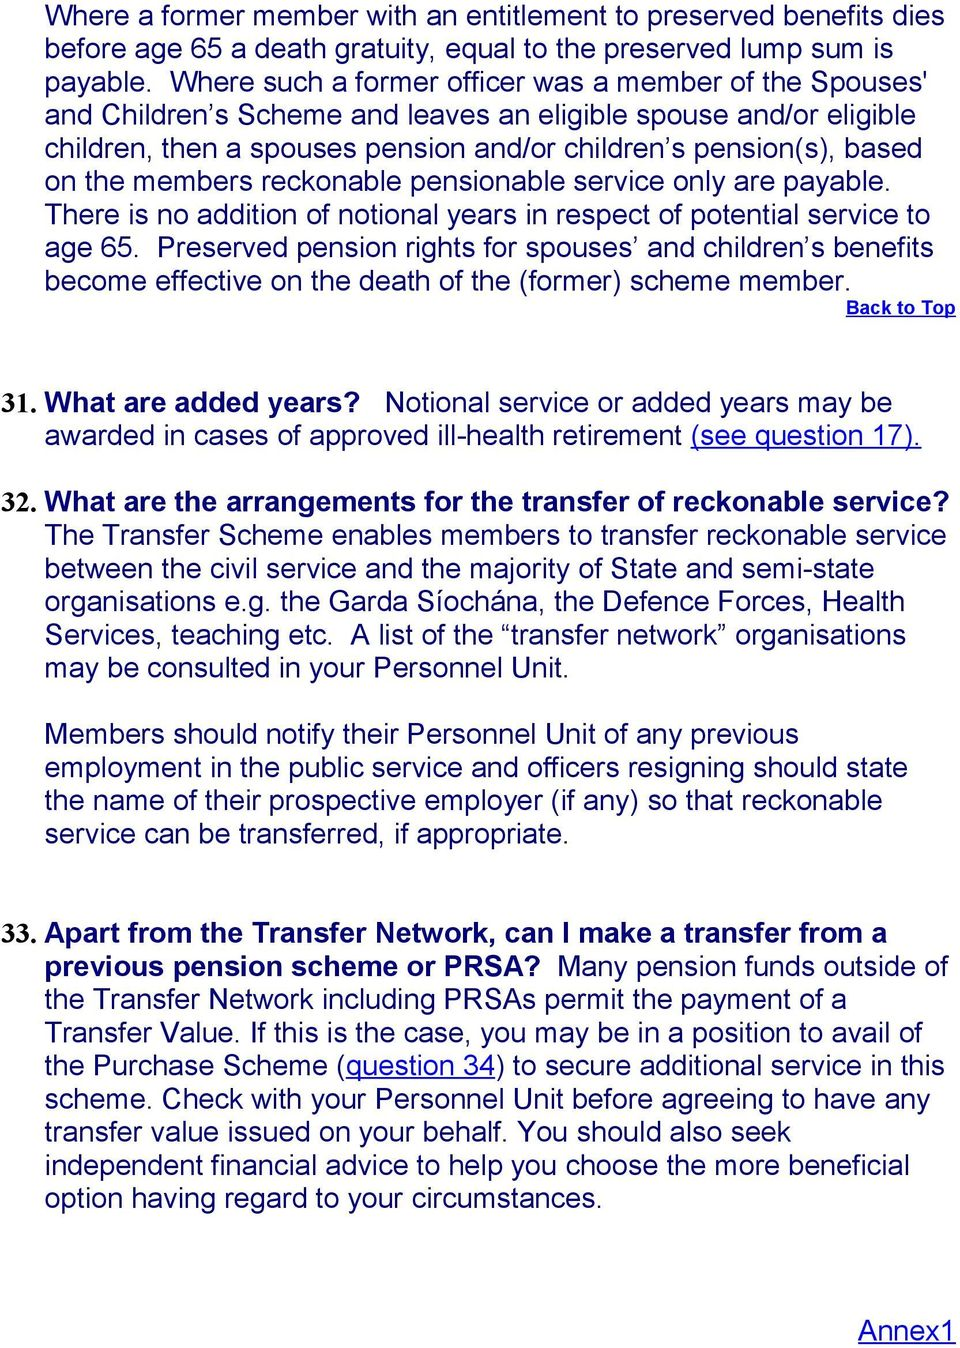 the members reckonable pensionable service only are payable. There is no addition of notional years in respect of potential service to age 65.